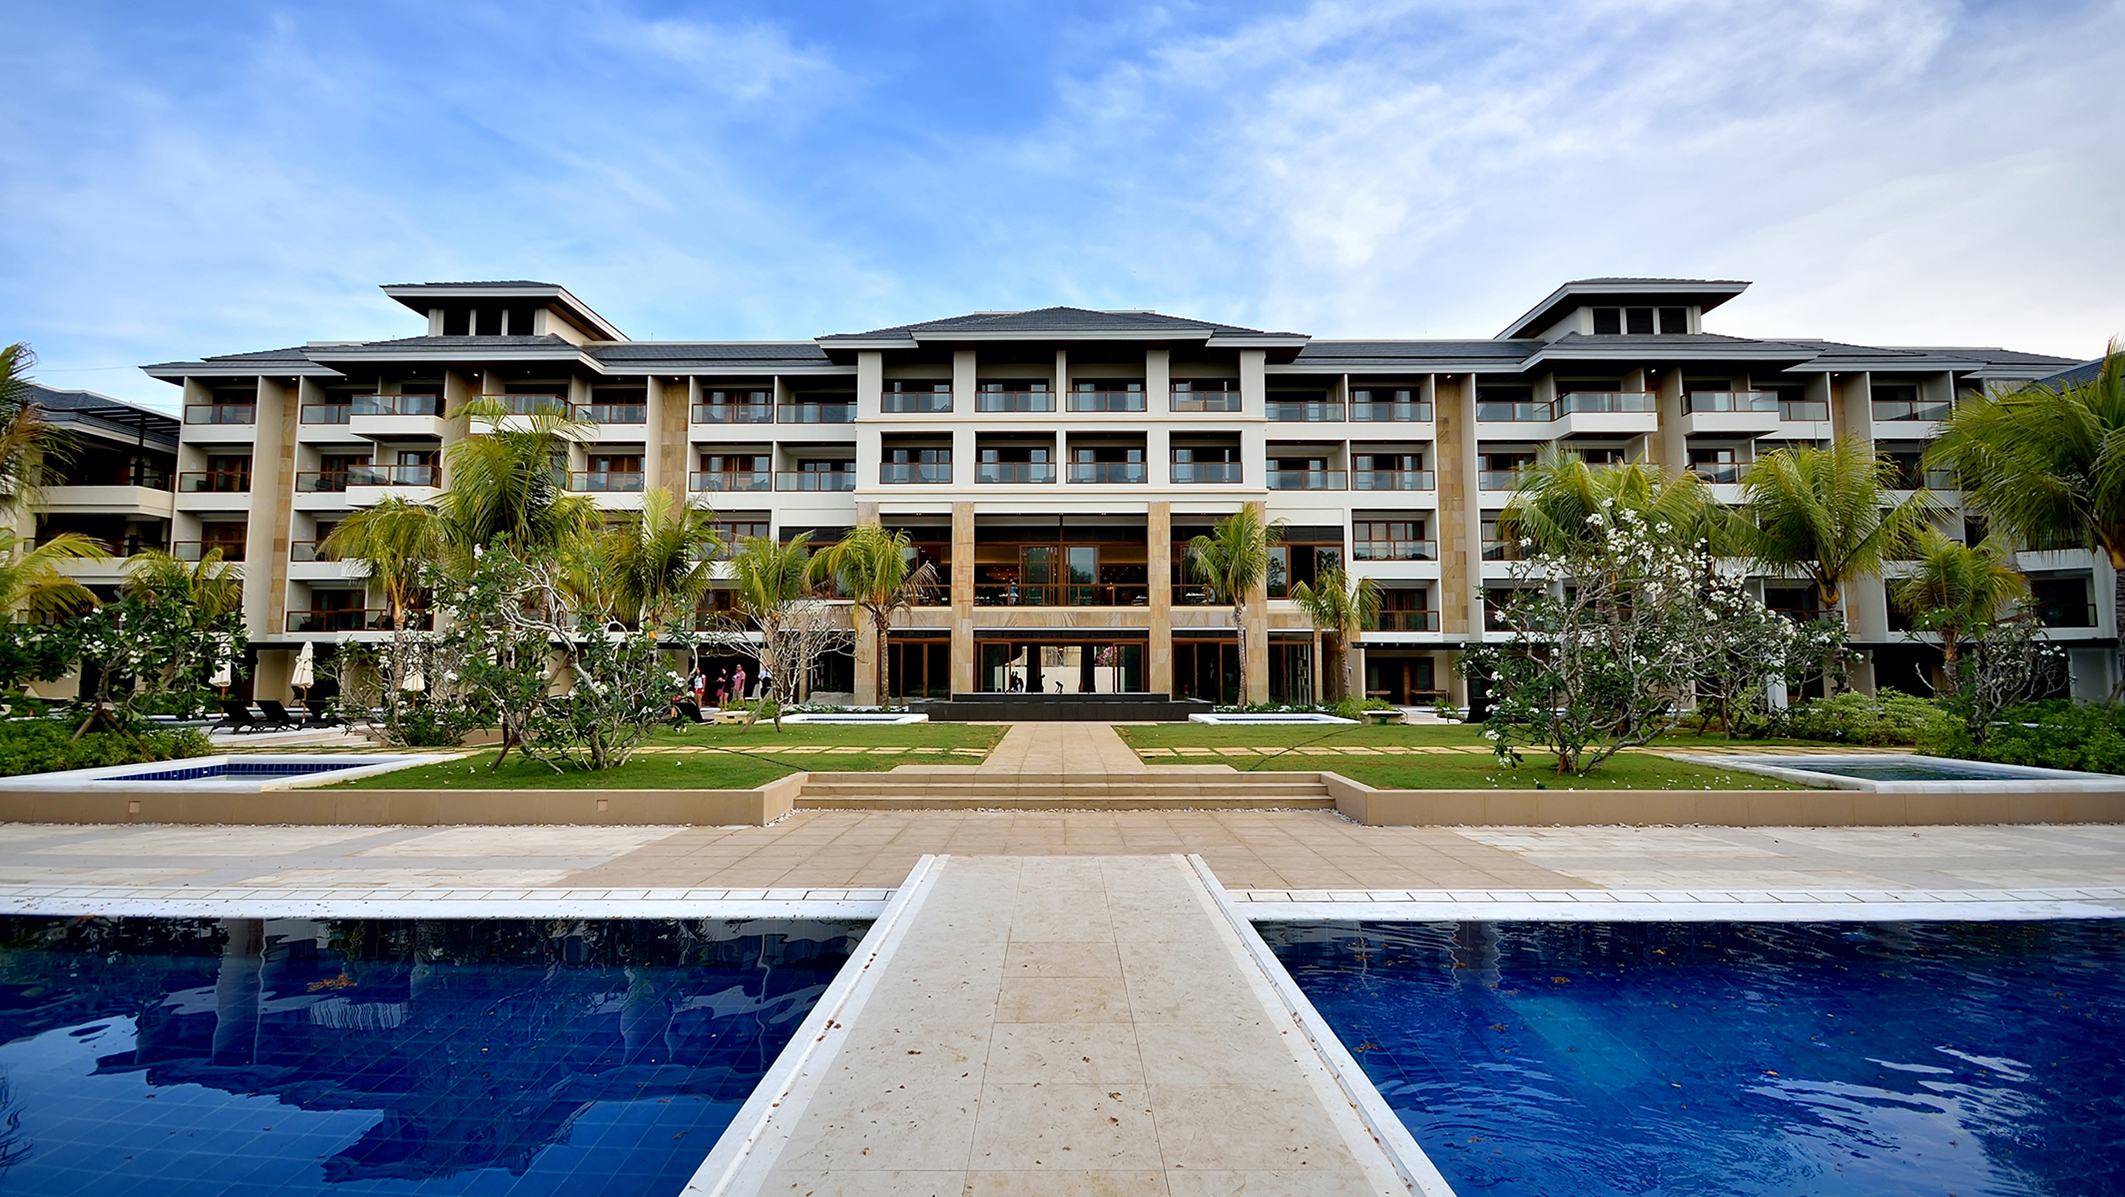 Henann Group expands resort business to Bohol